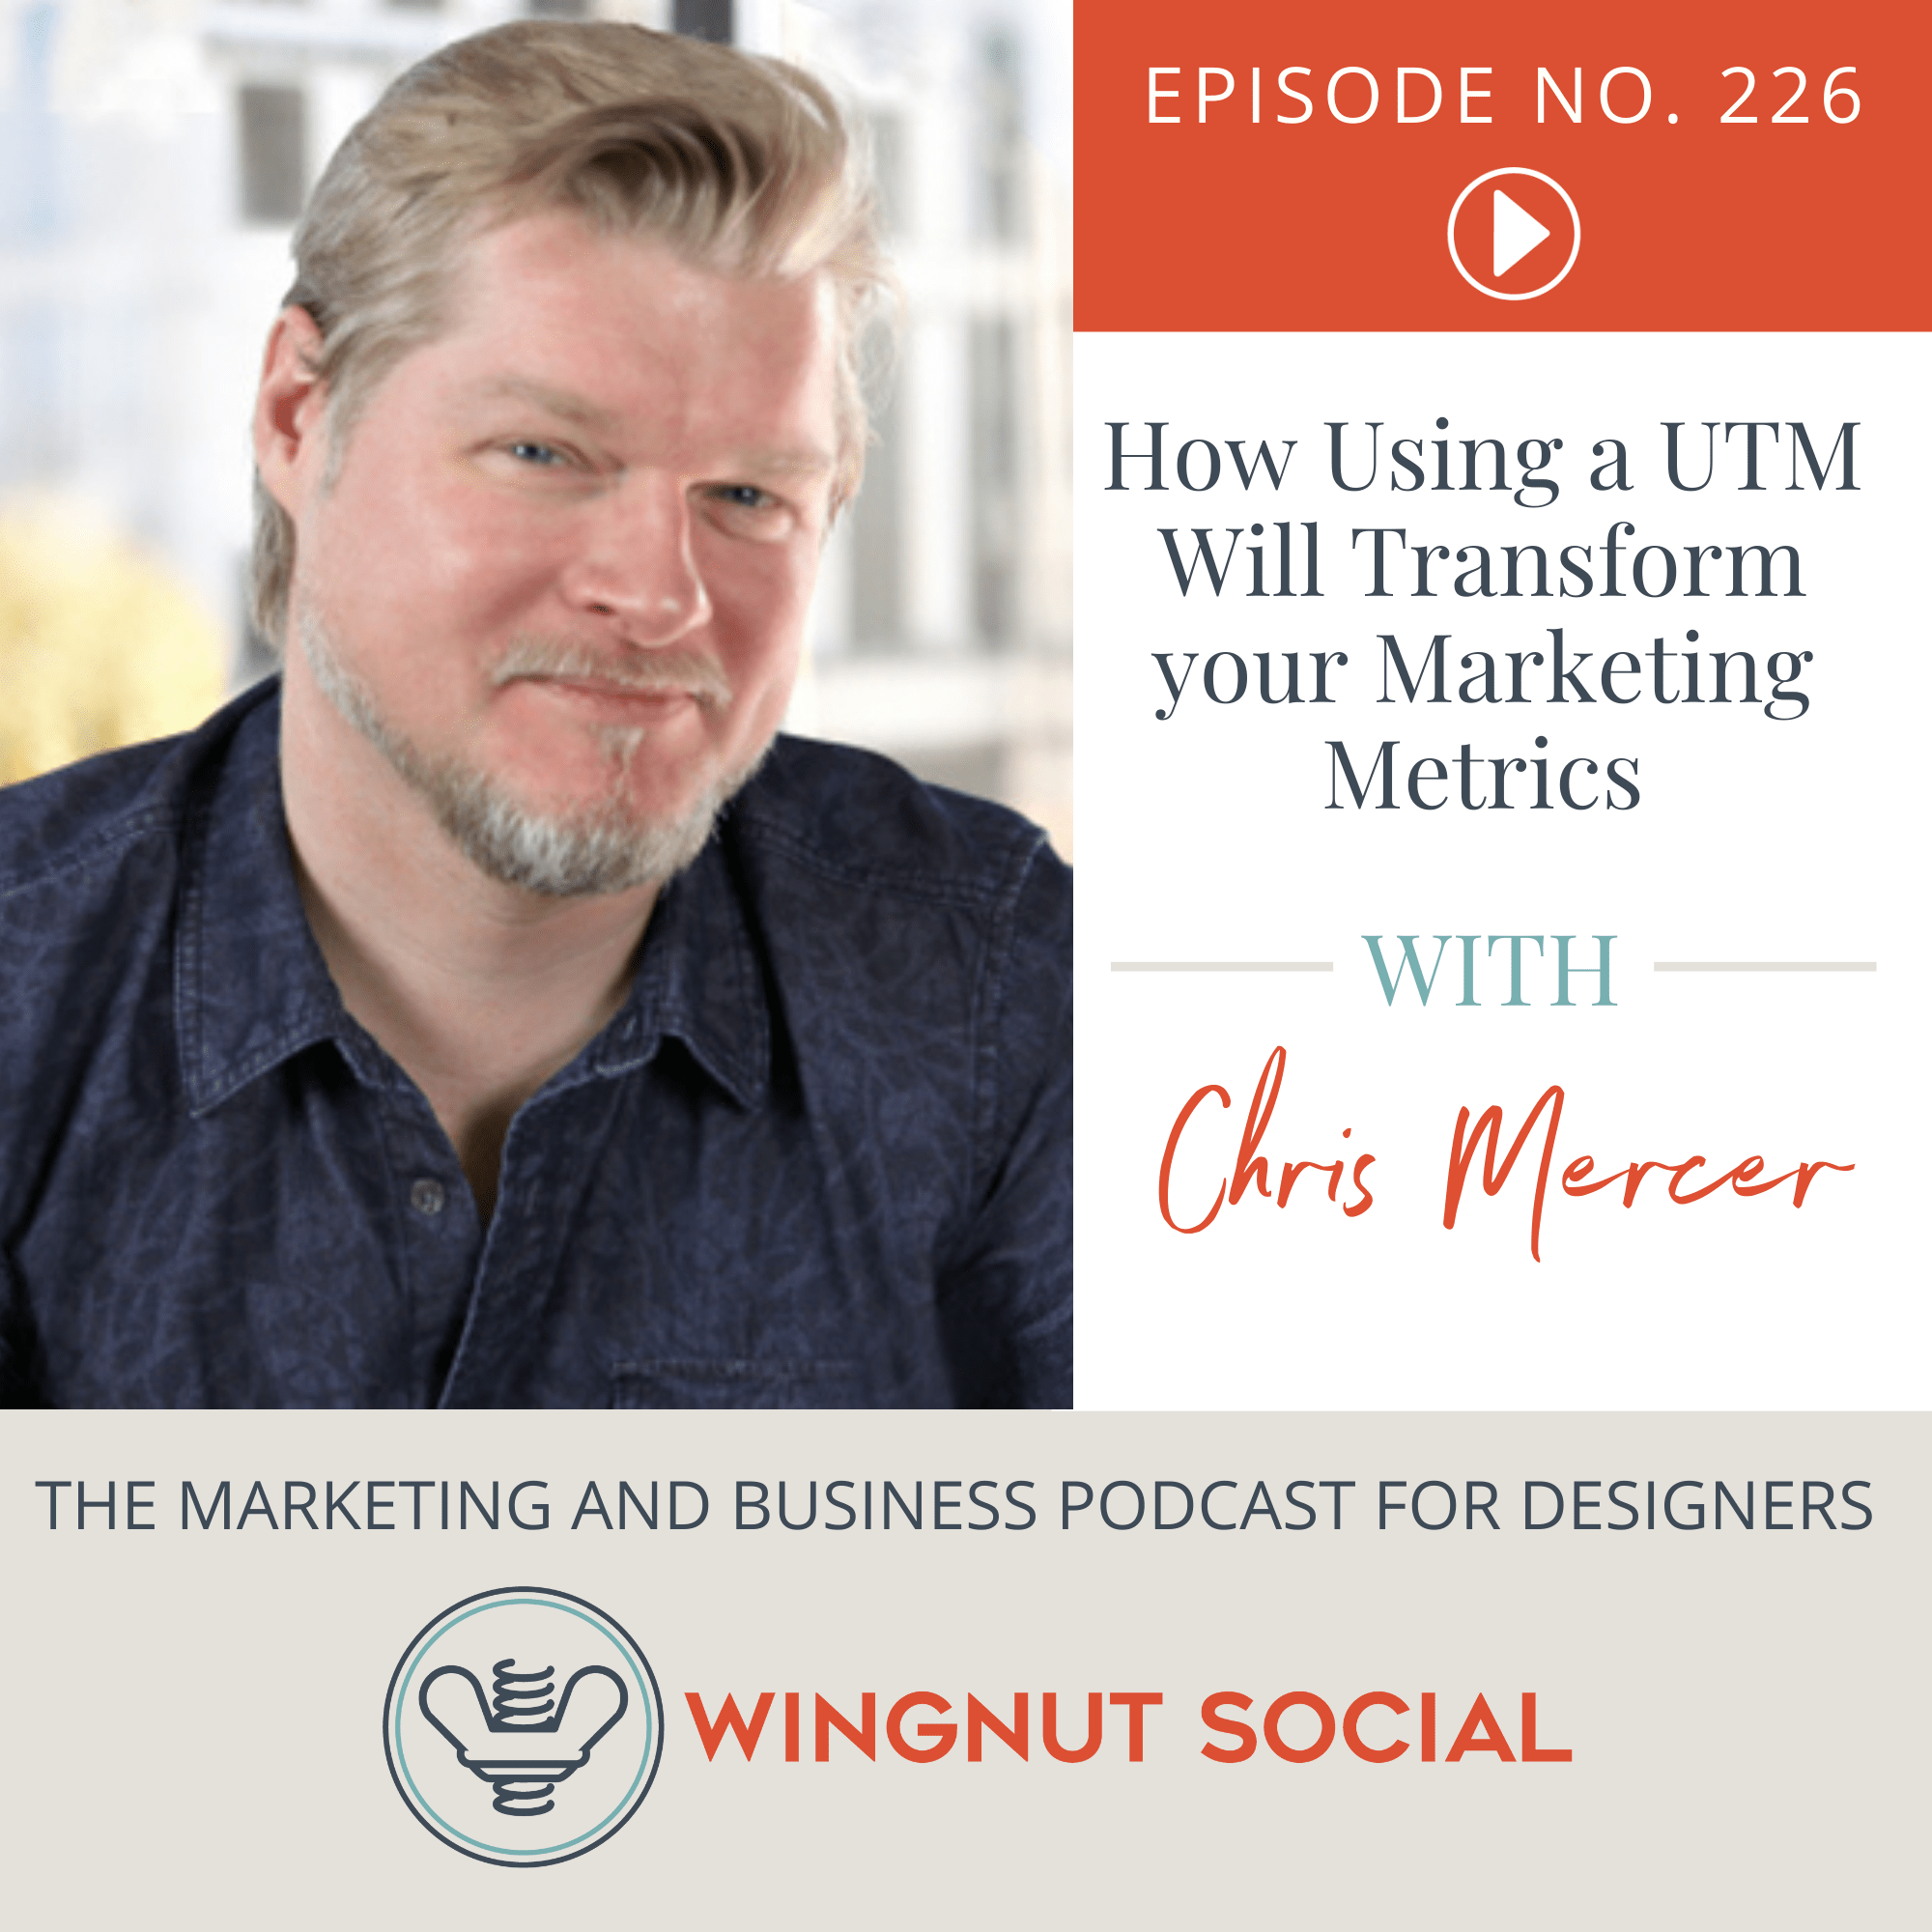 How Using a UTM Will Transform your Marketing Metrics with Chris Mercer - Episode 226